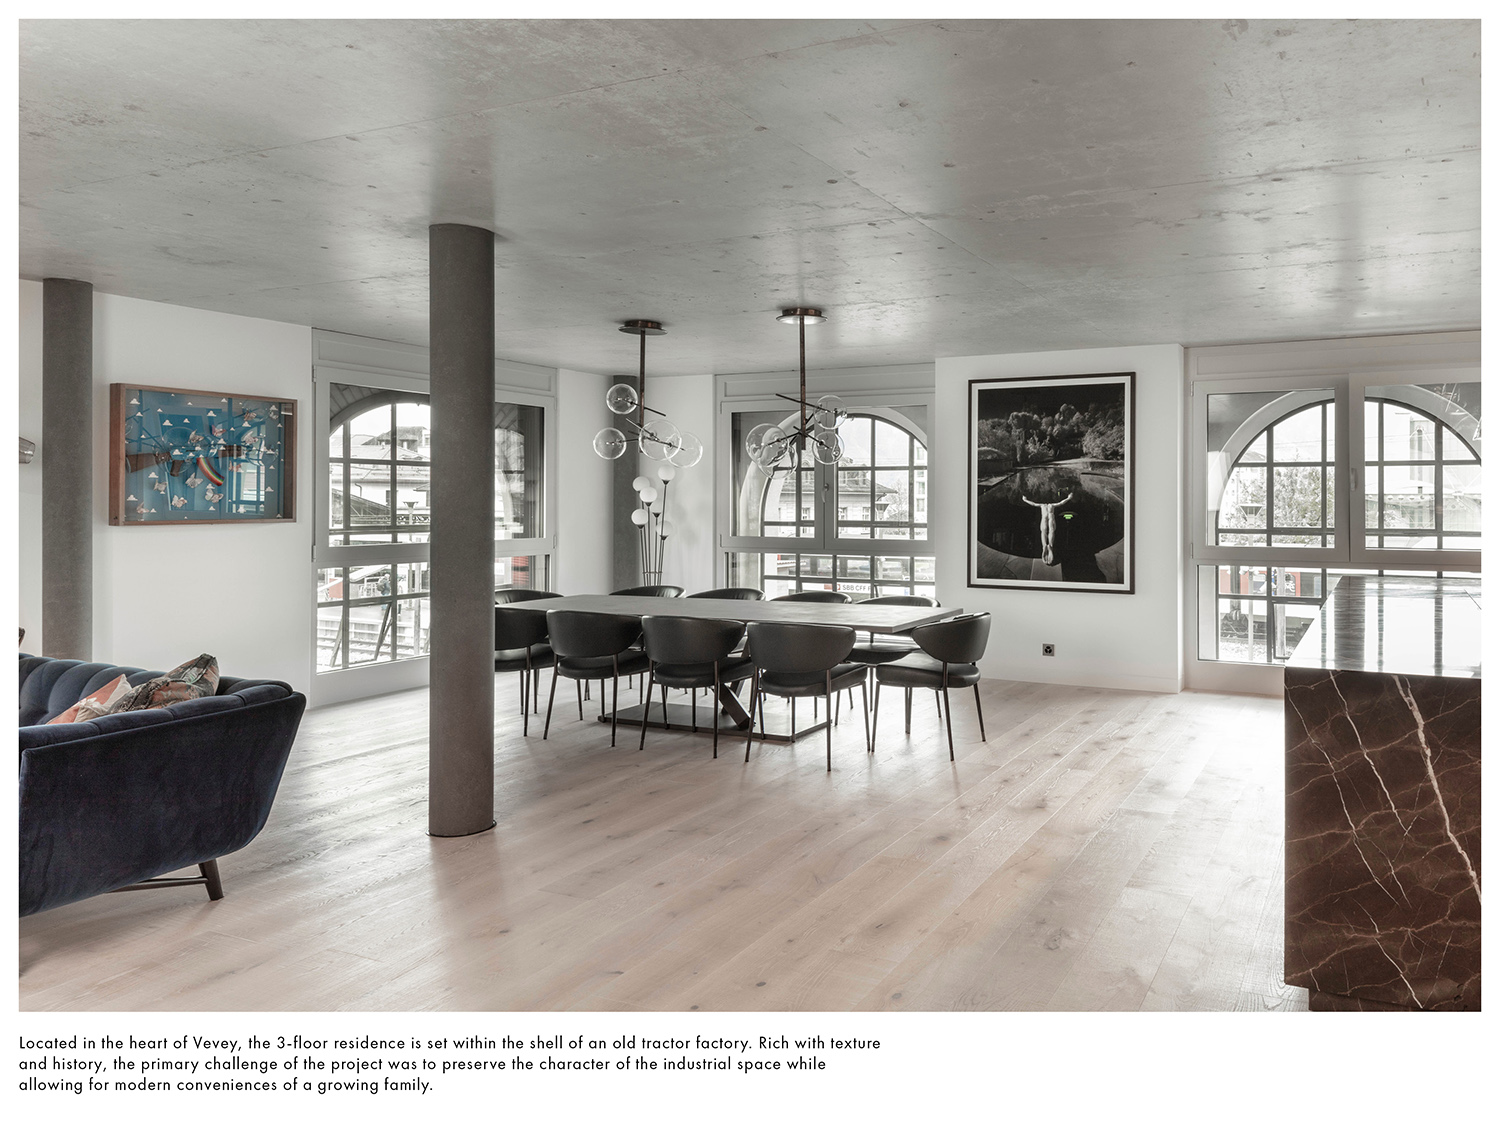 Rich with texture and history, the primary challenge of the project was to preserve the character of the industrial space while allowing for modern conveniences of a growing family. Delphine Burtin}